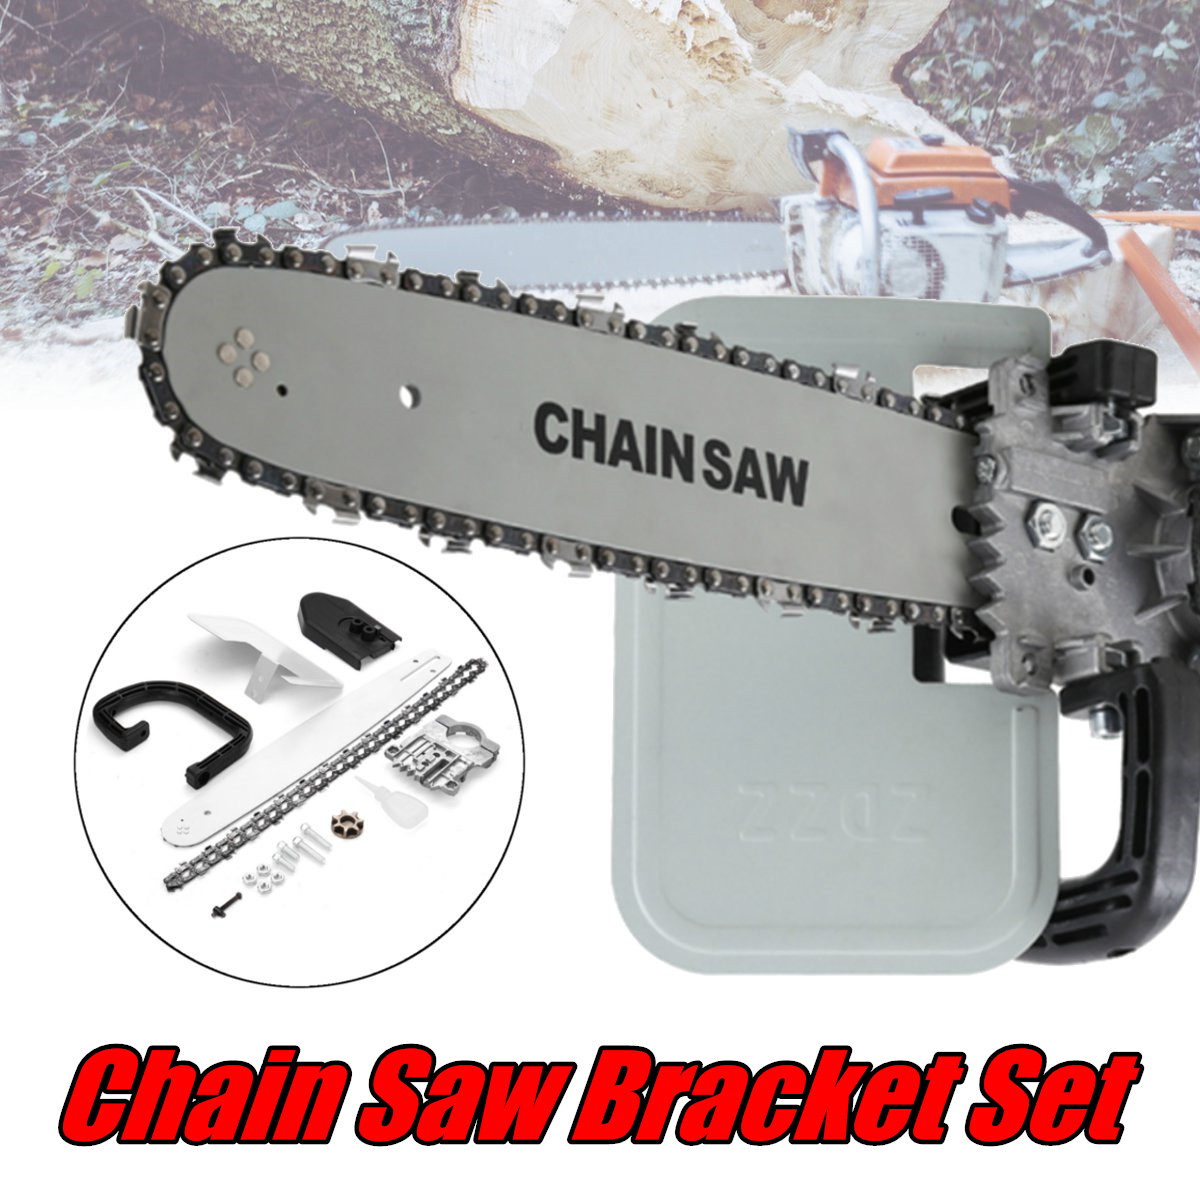 Upgrade 16 Inch DIY Chain Saw Adapter Bracket Changed Angle Grinder Into DIY Chain Saw Woodworking Tool